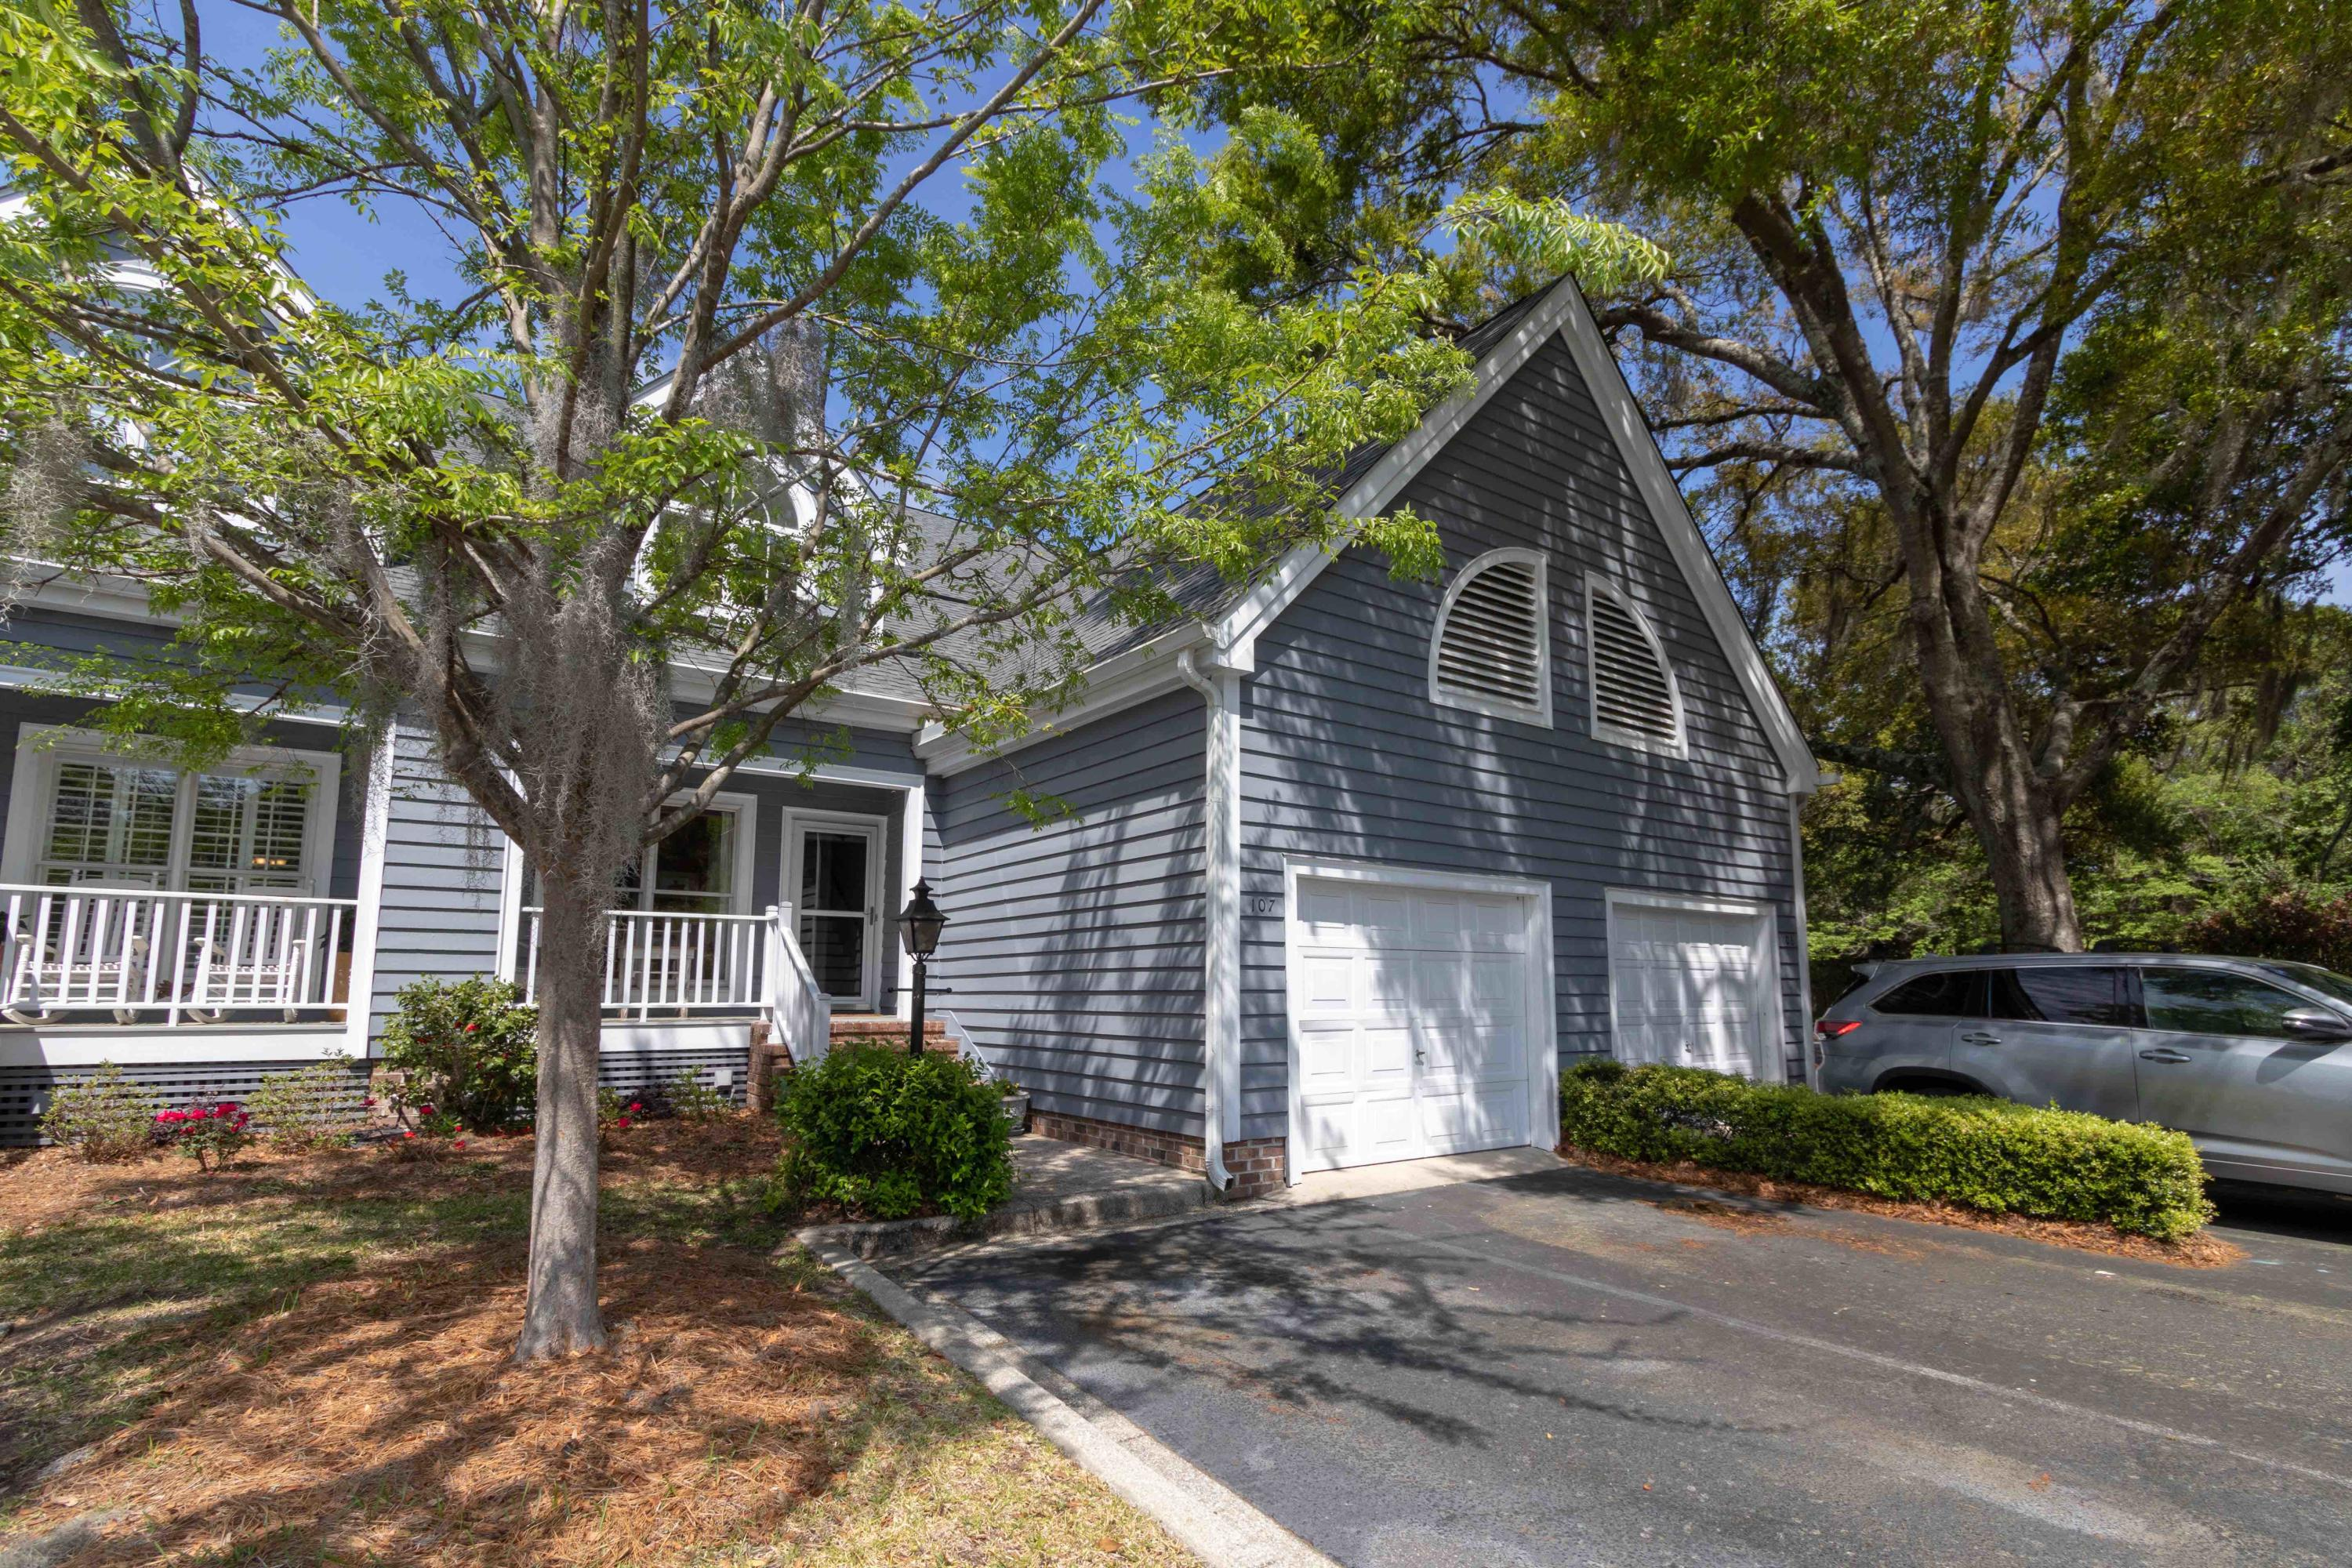 Waterfront Plantation Homes For Sale - 107 Waterfront Plantation, Charleston, SC - 3